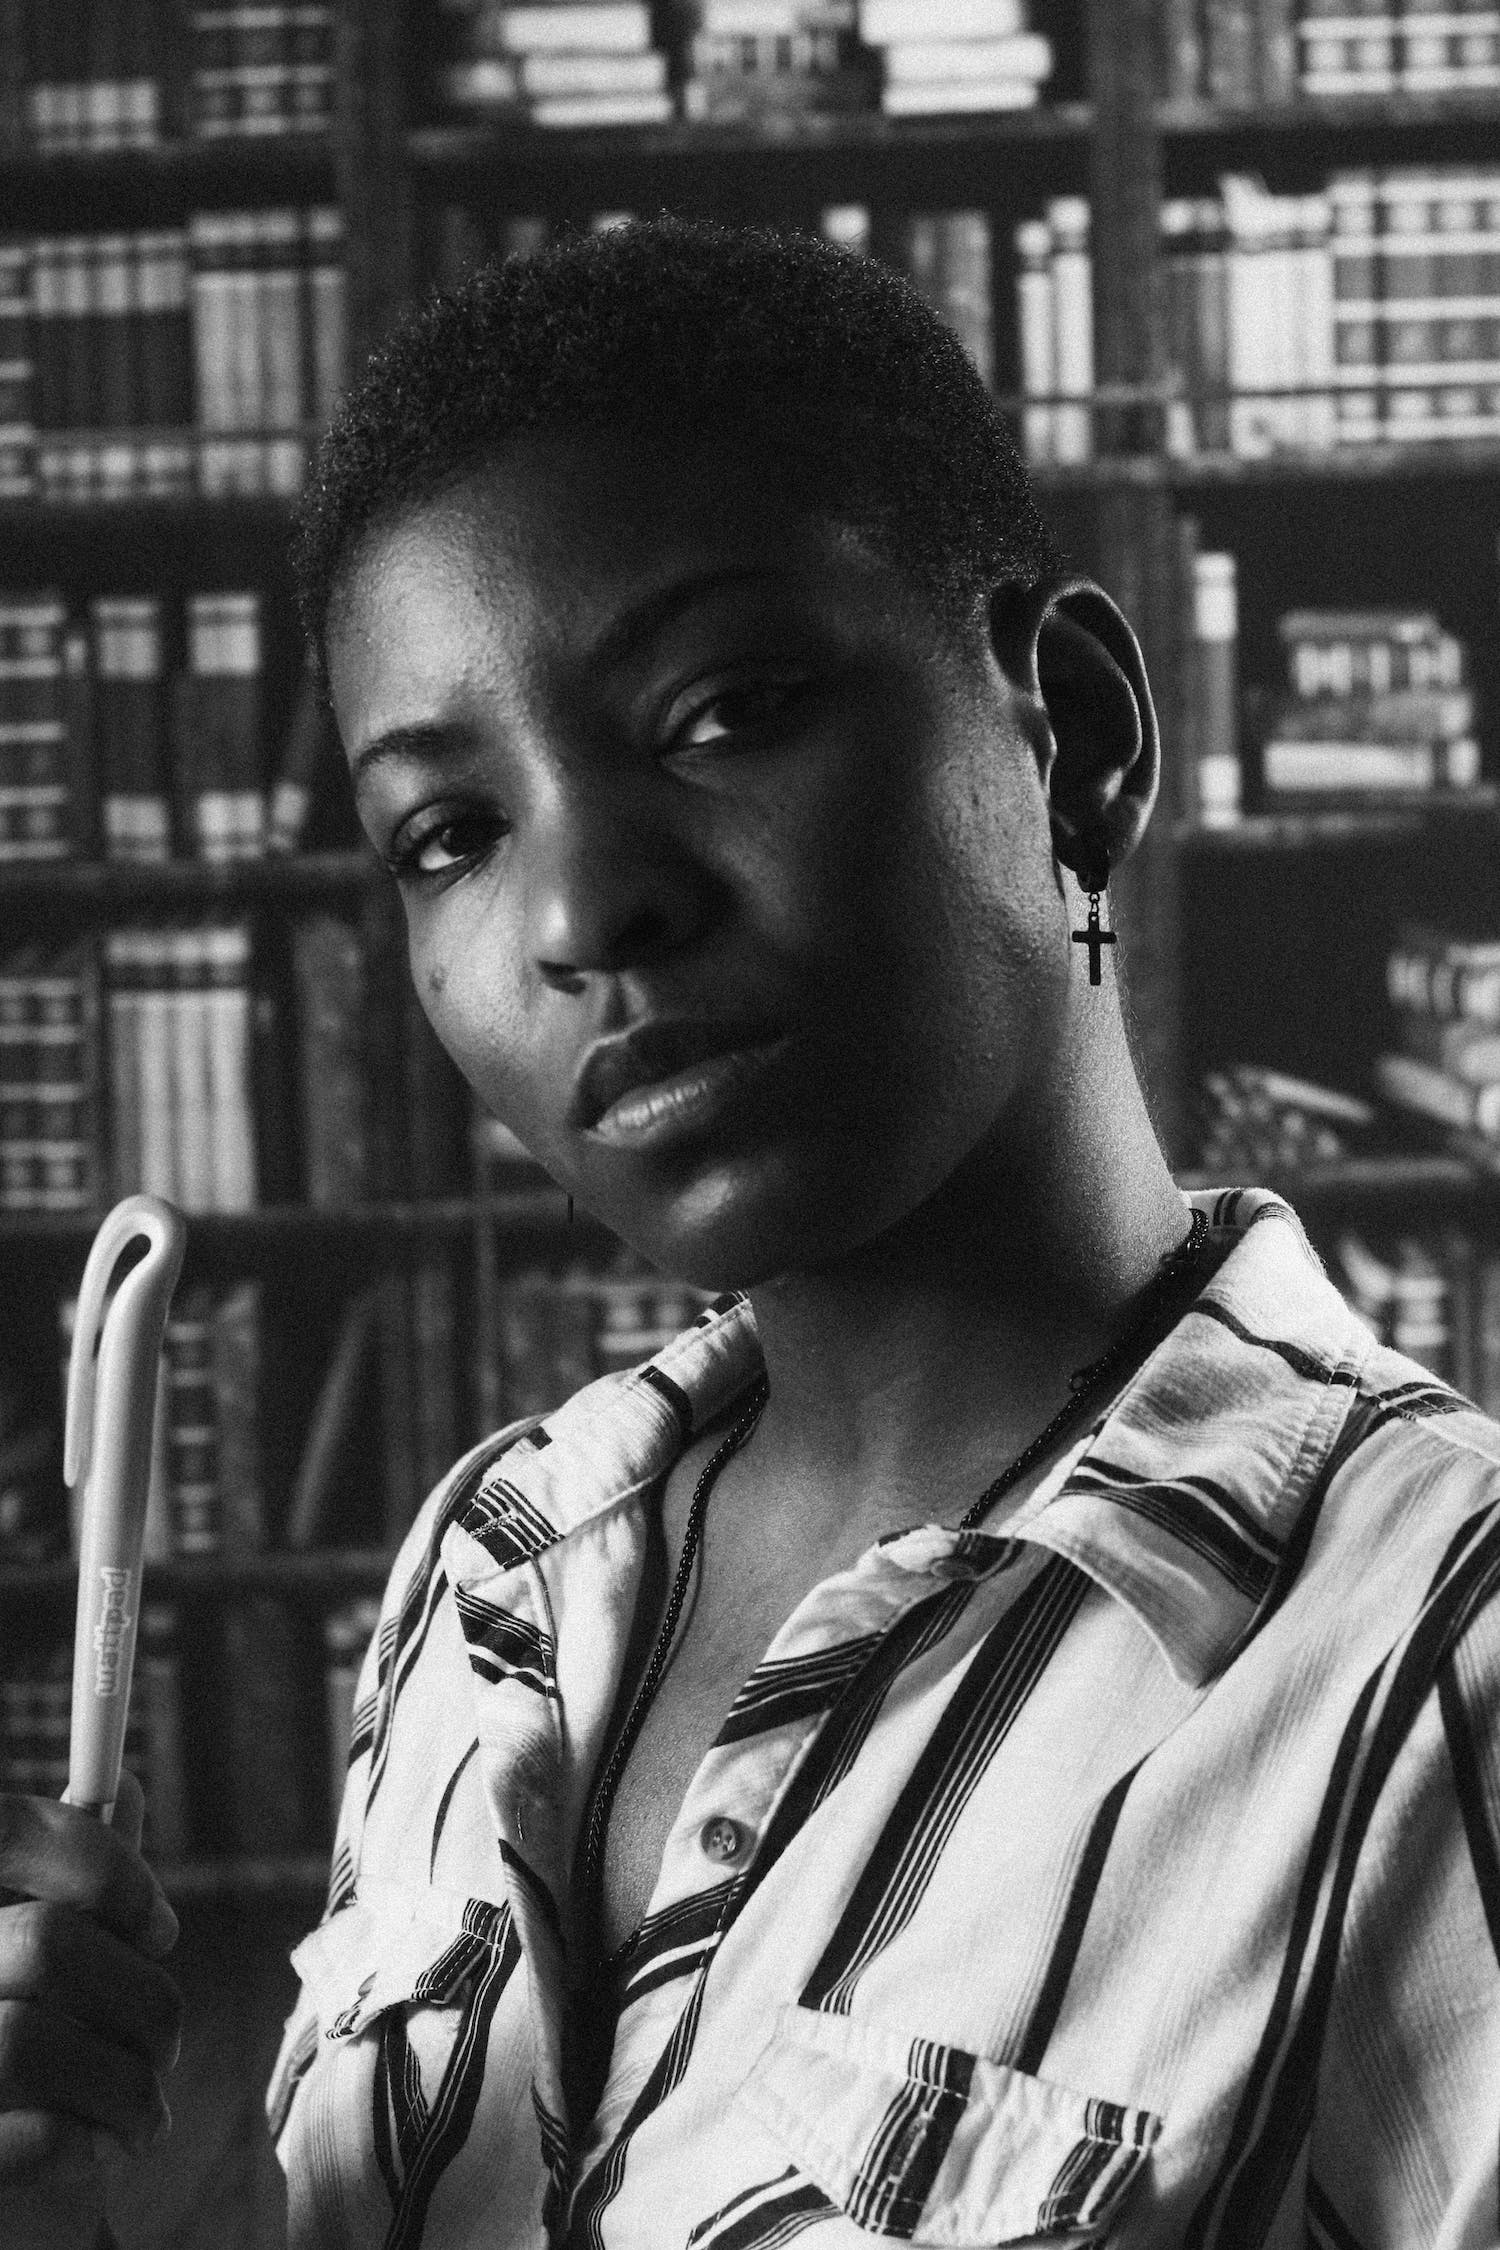 Portrait of a black female model inside a library.